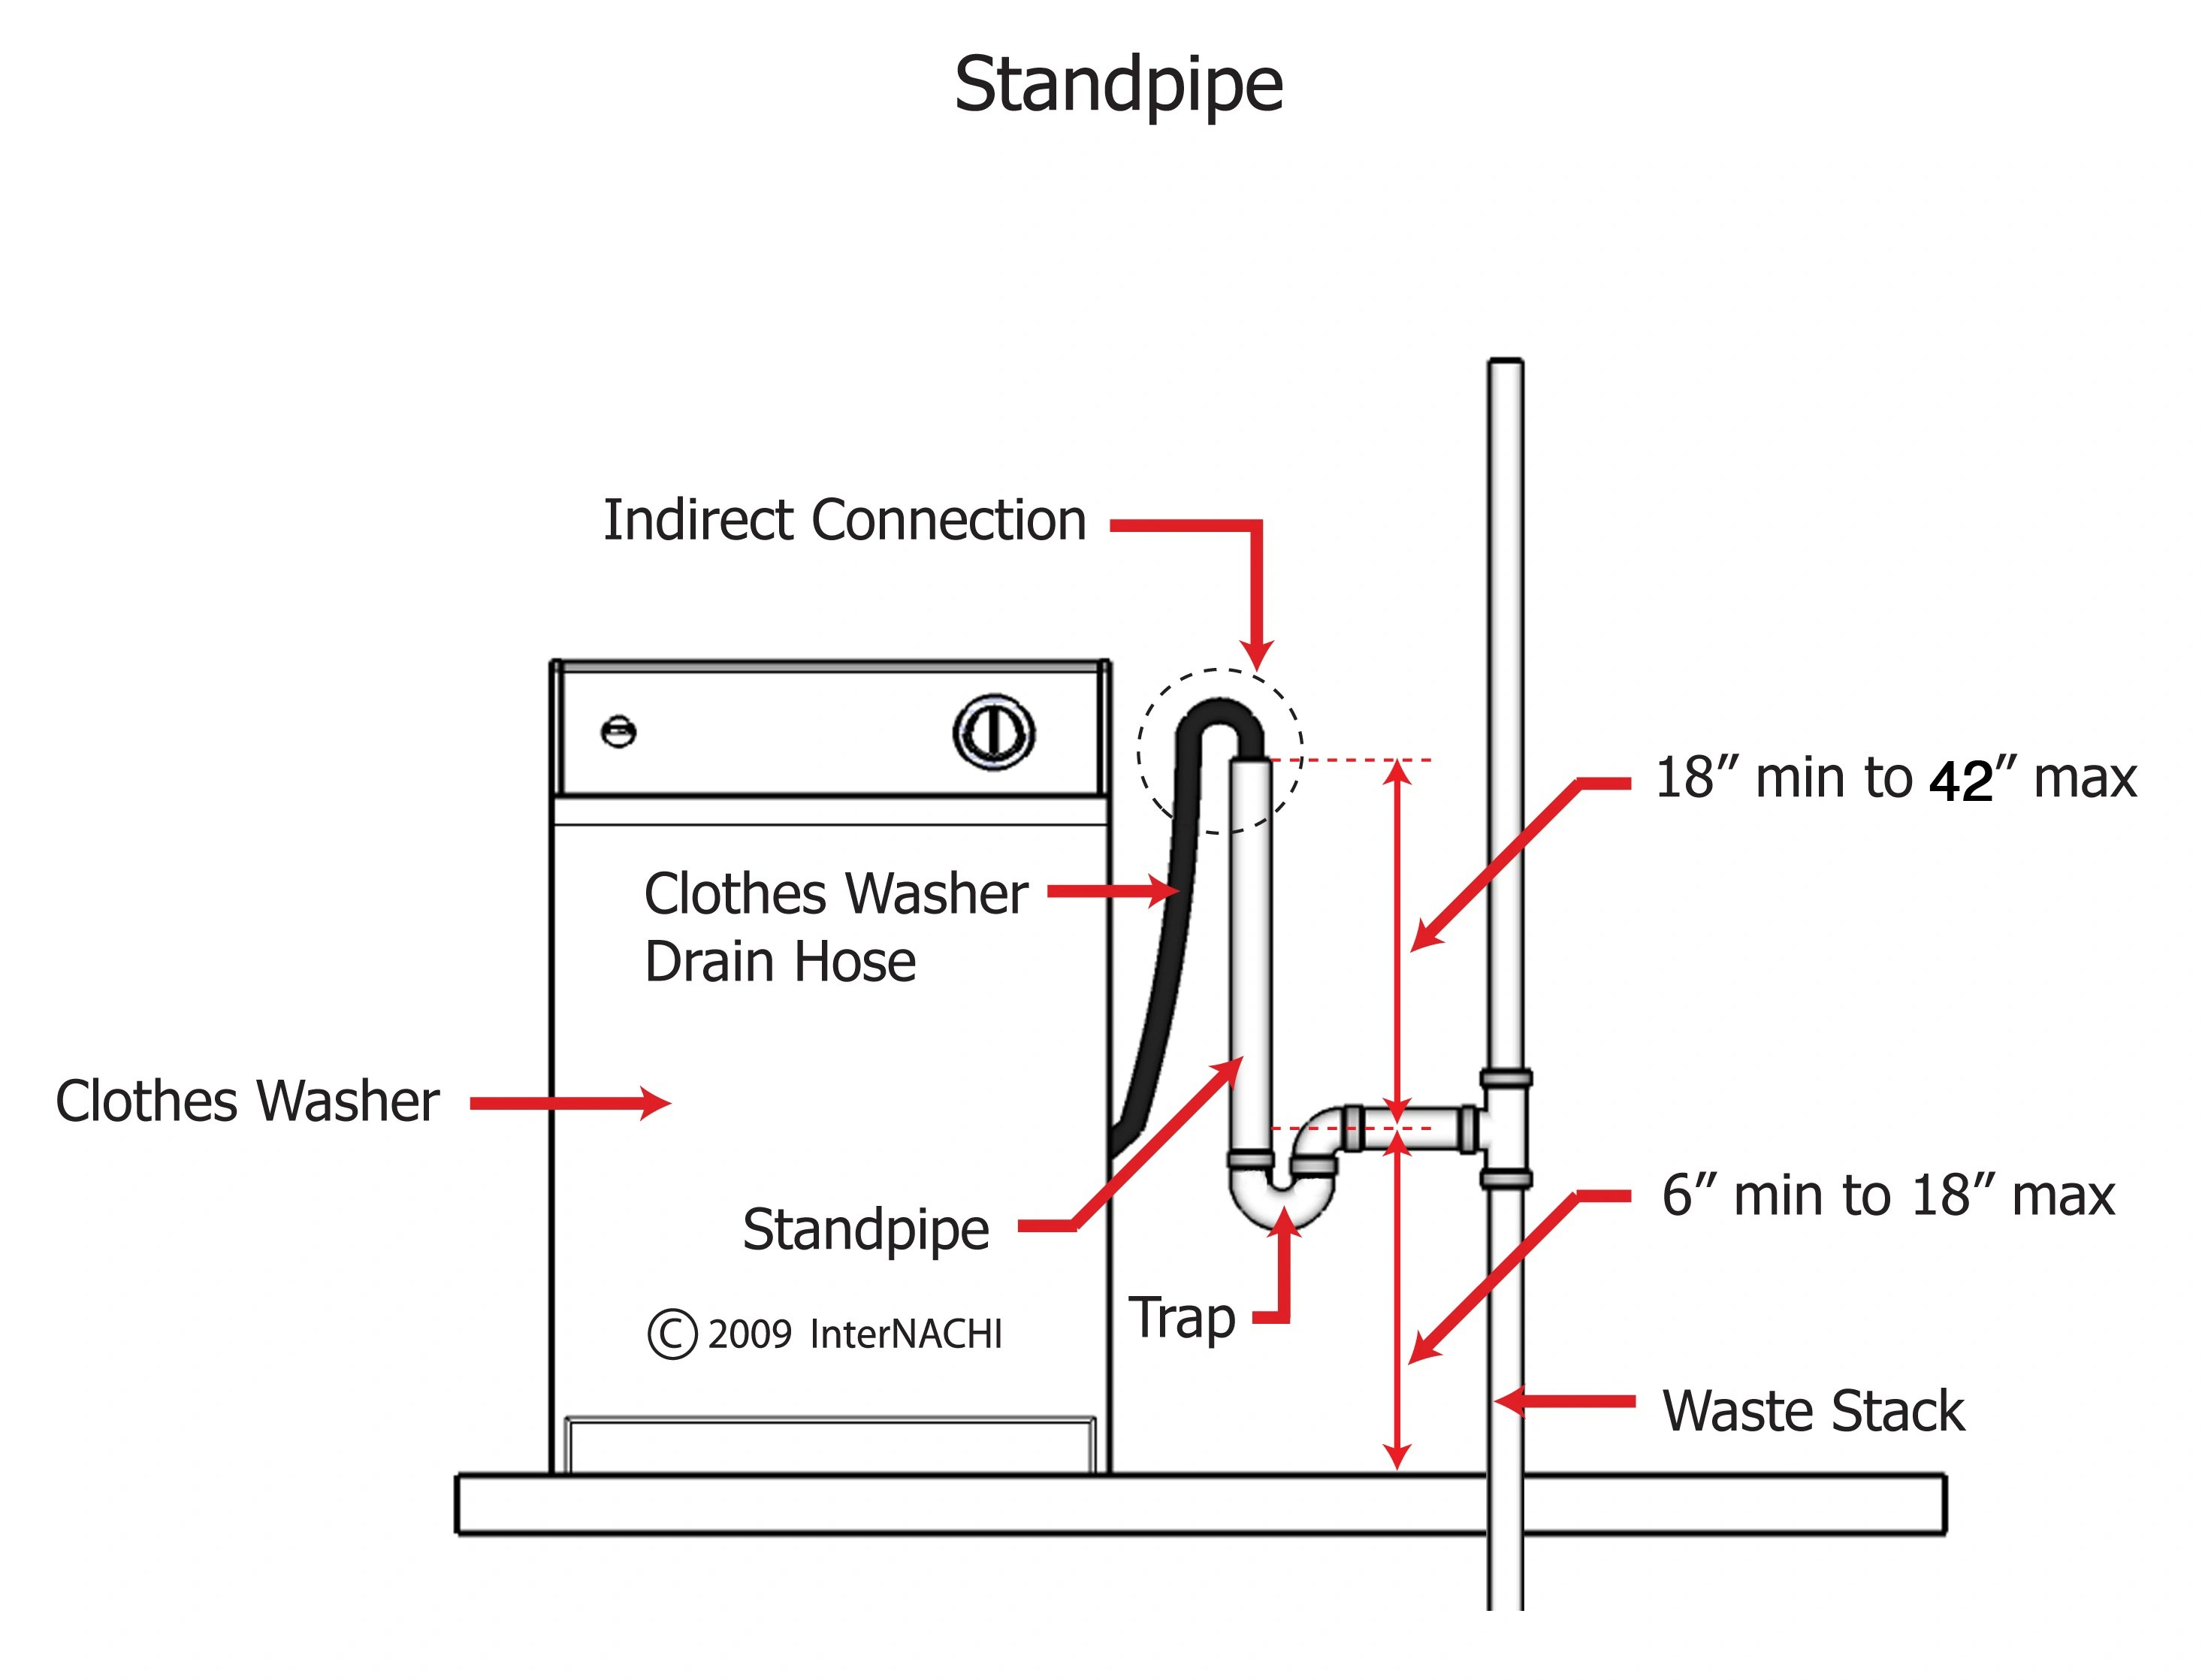 Standpipe For A Clothes Washer